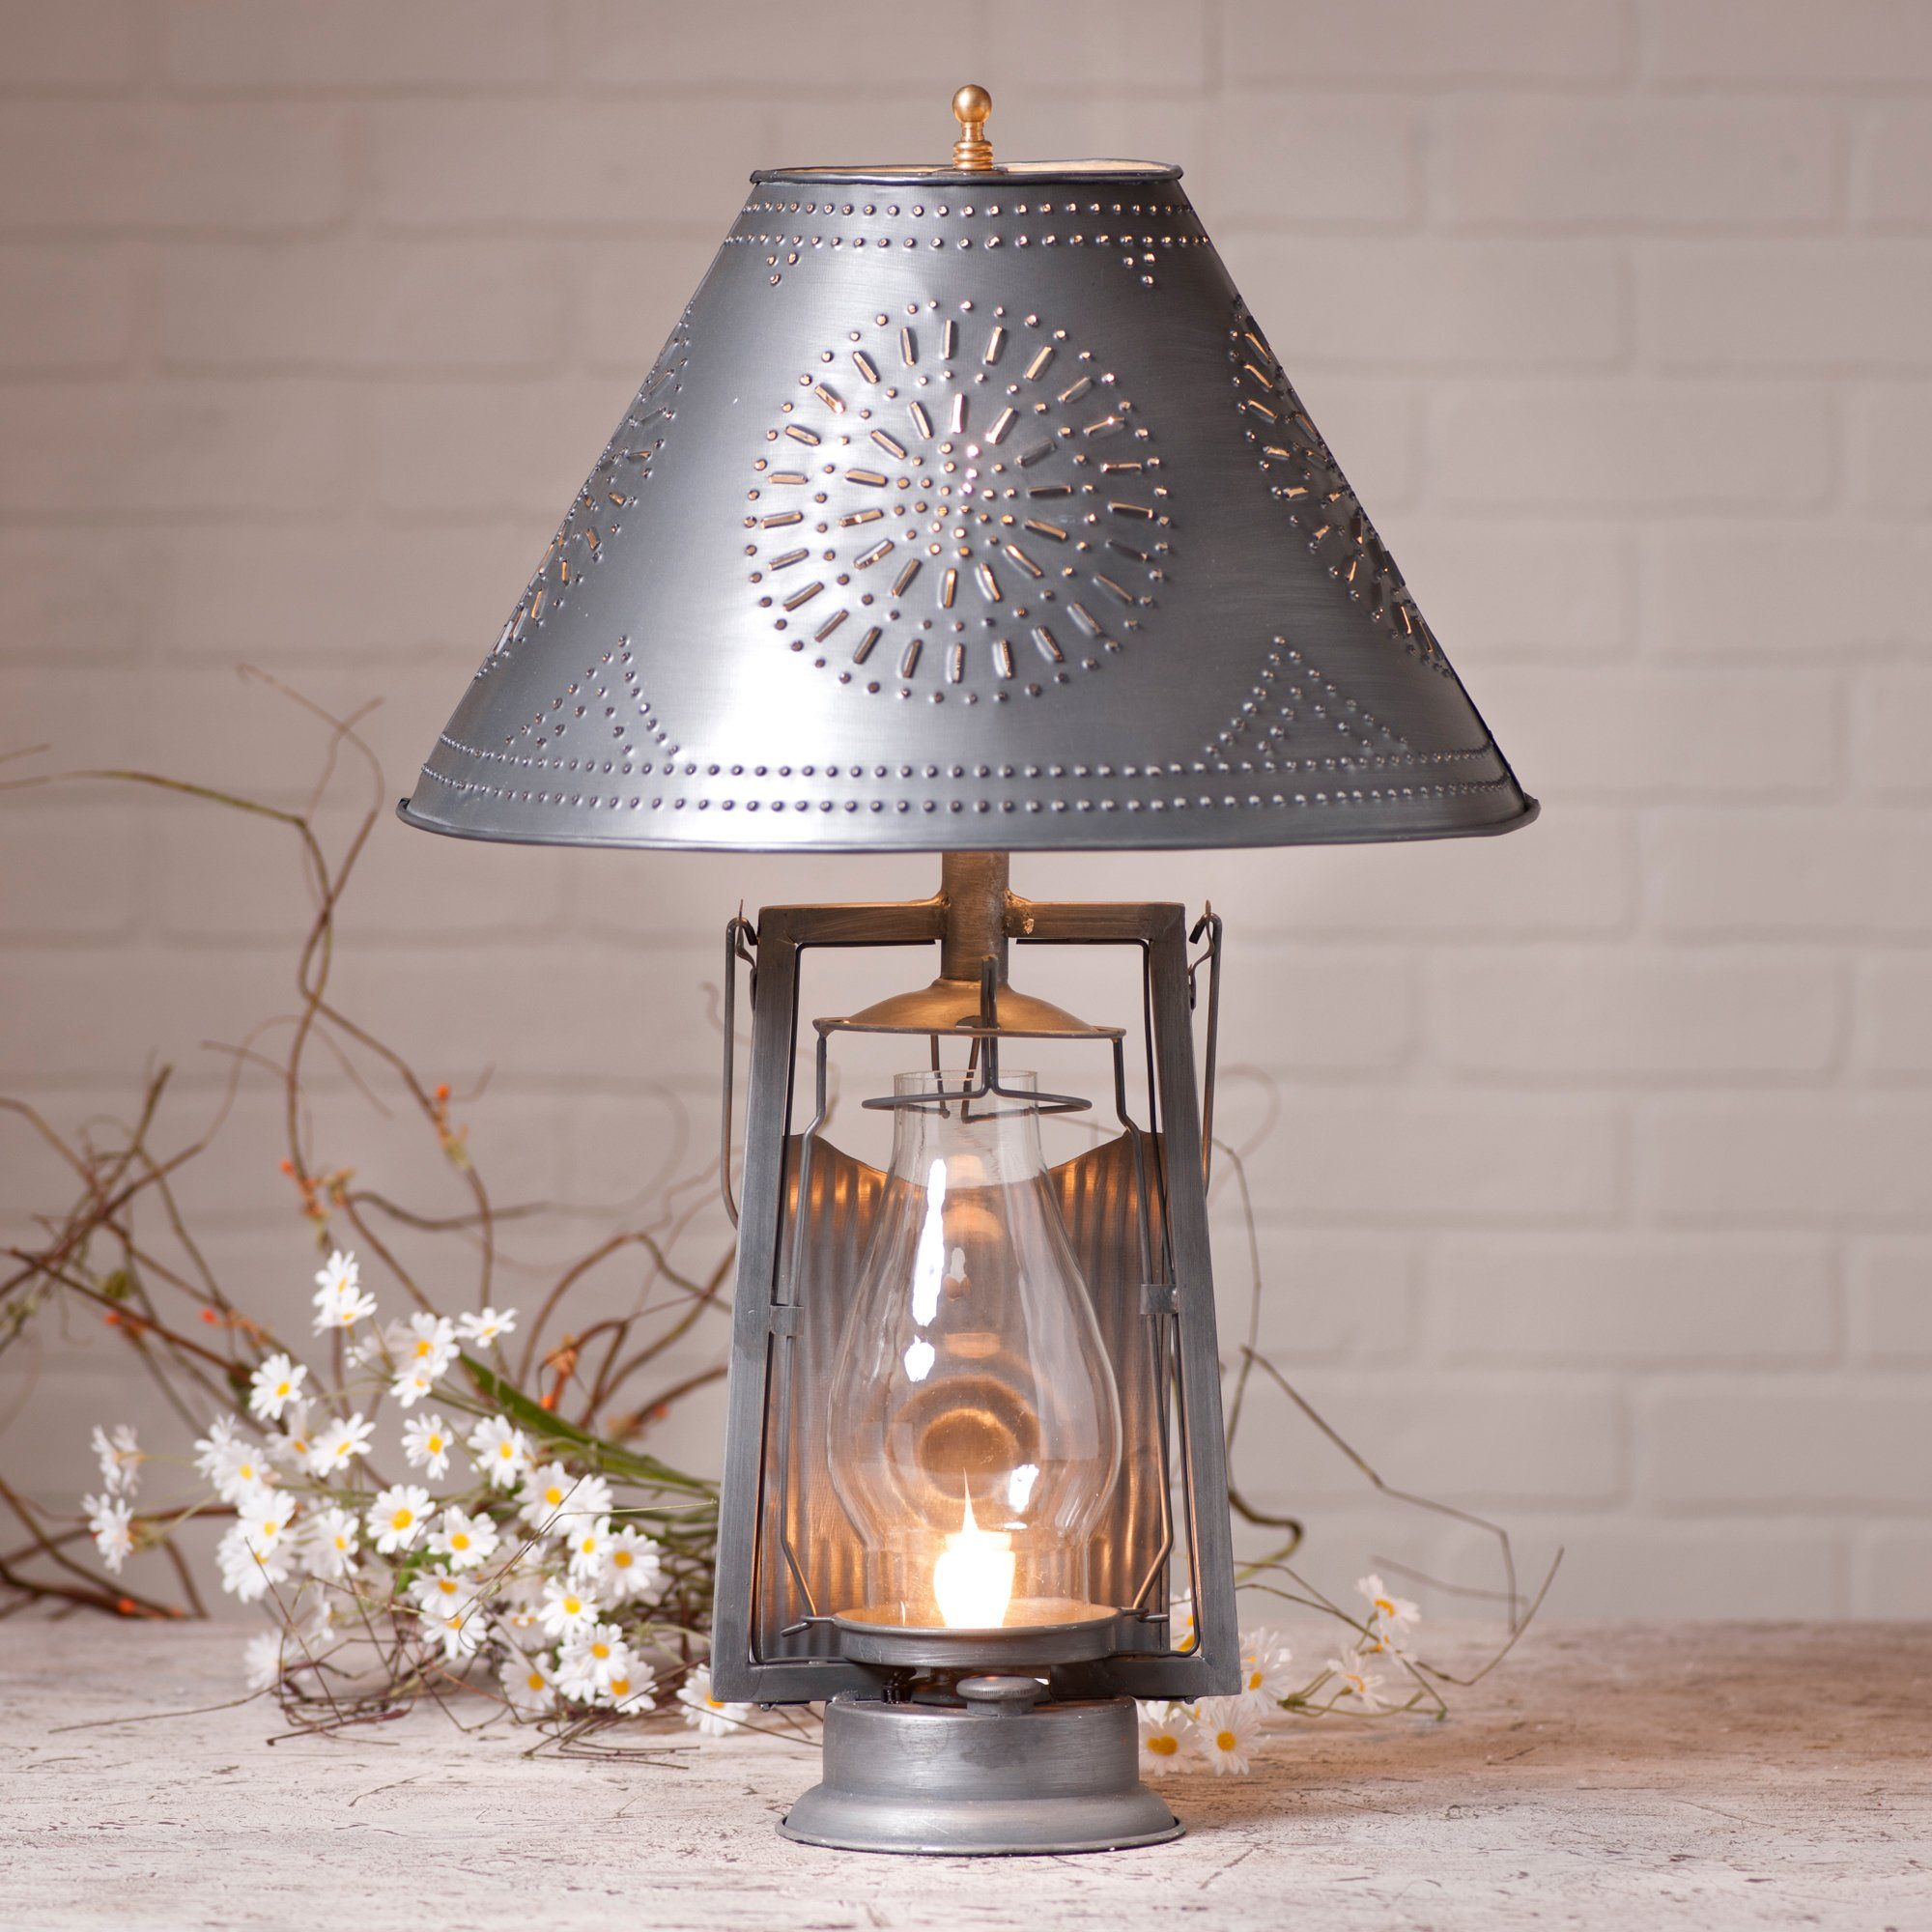 Irvin's Tinware Farmer's Lamp with Shade in Antique Tin